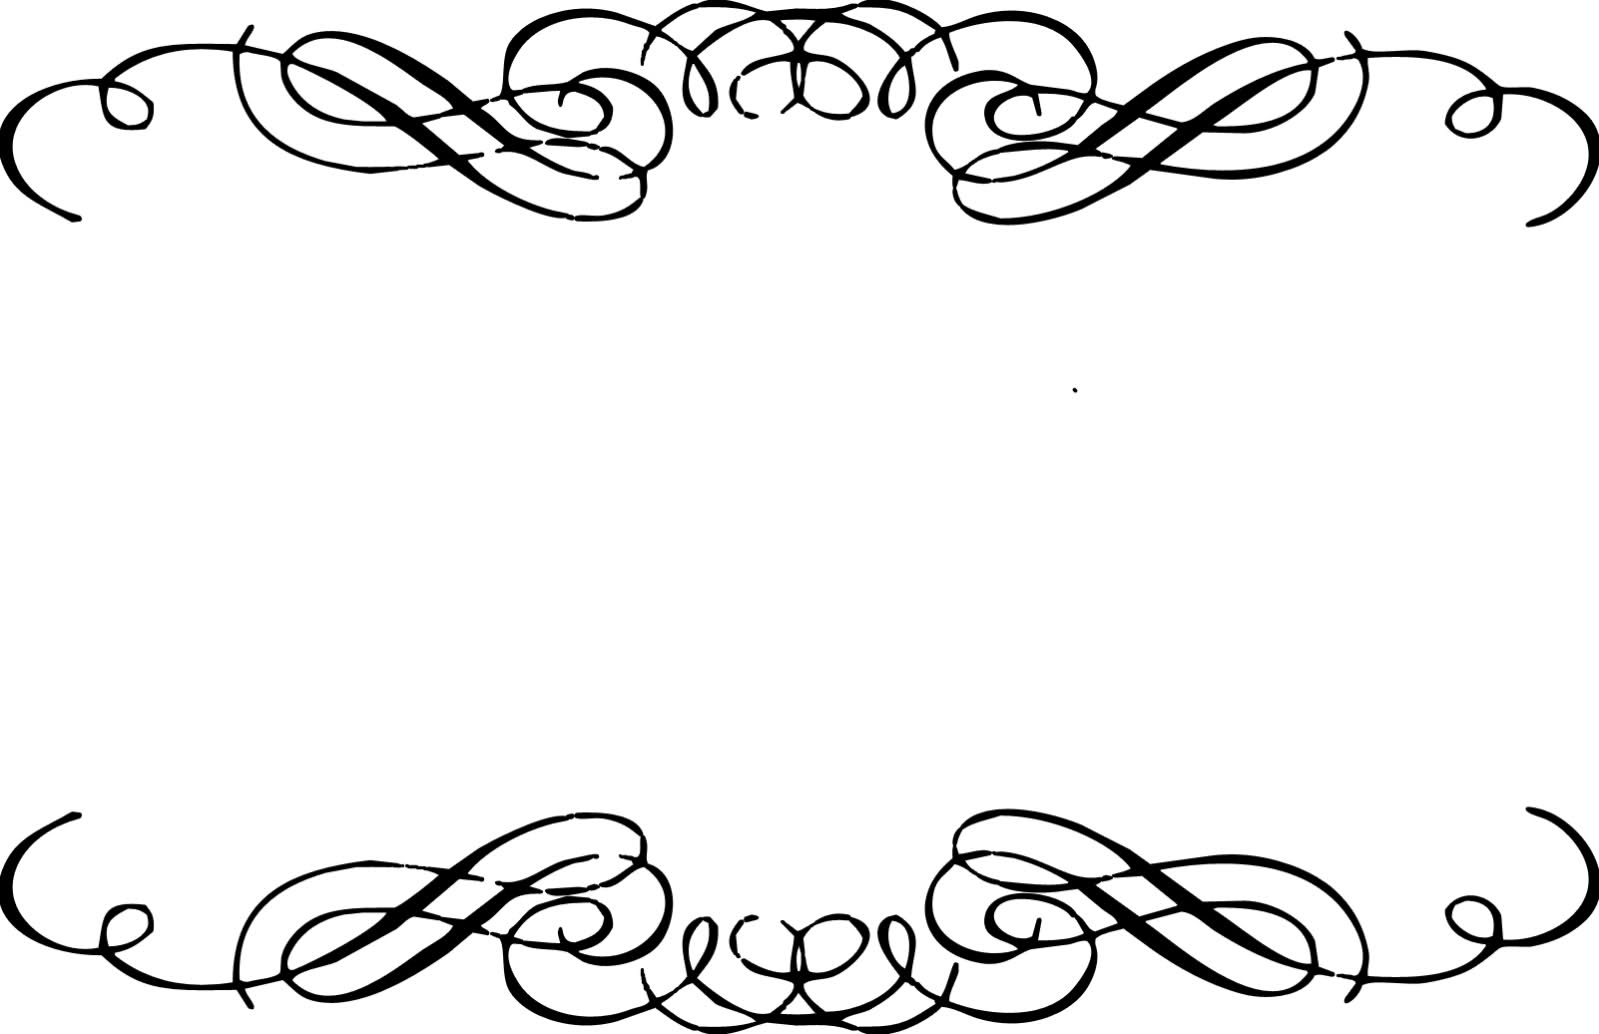 Air clipart curly cue. Free cliparts download clip